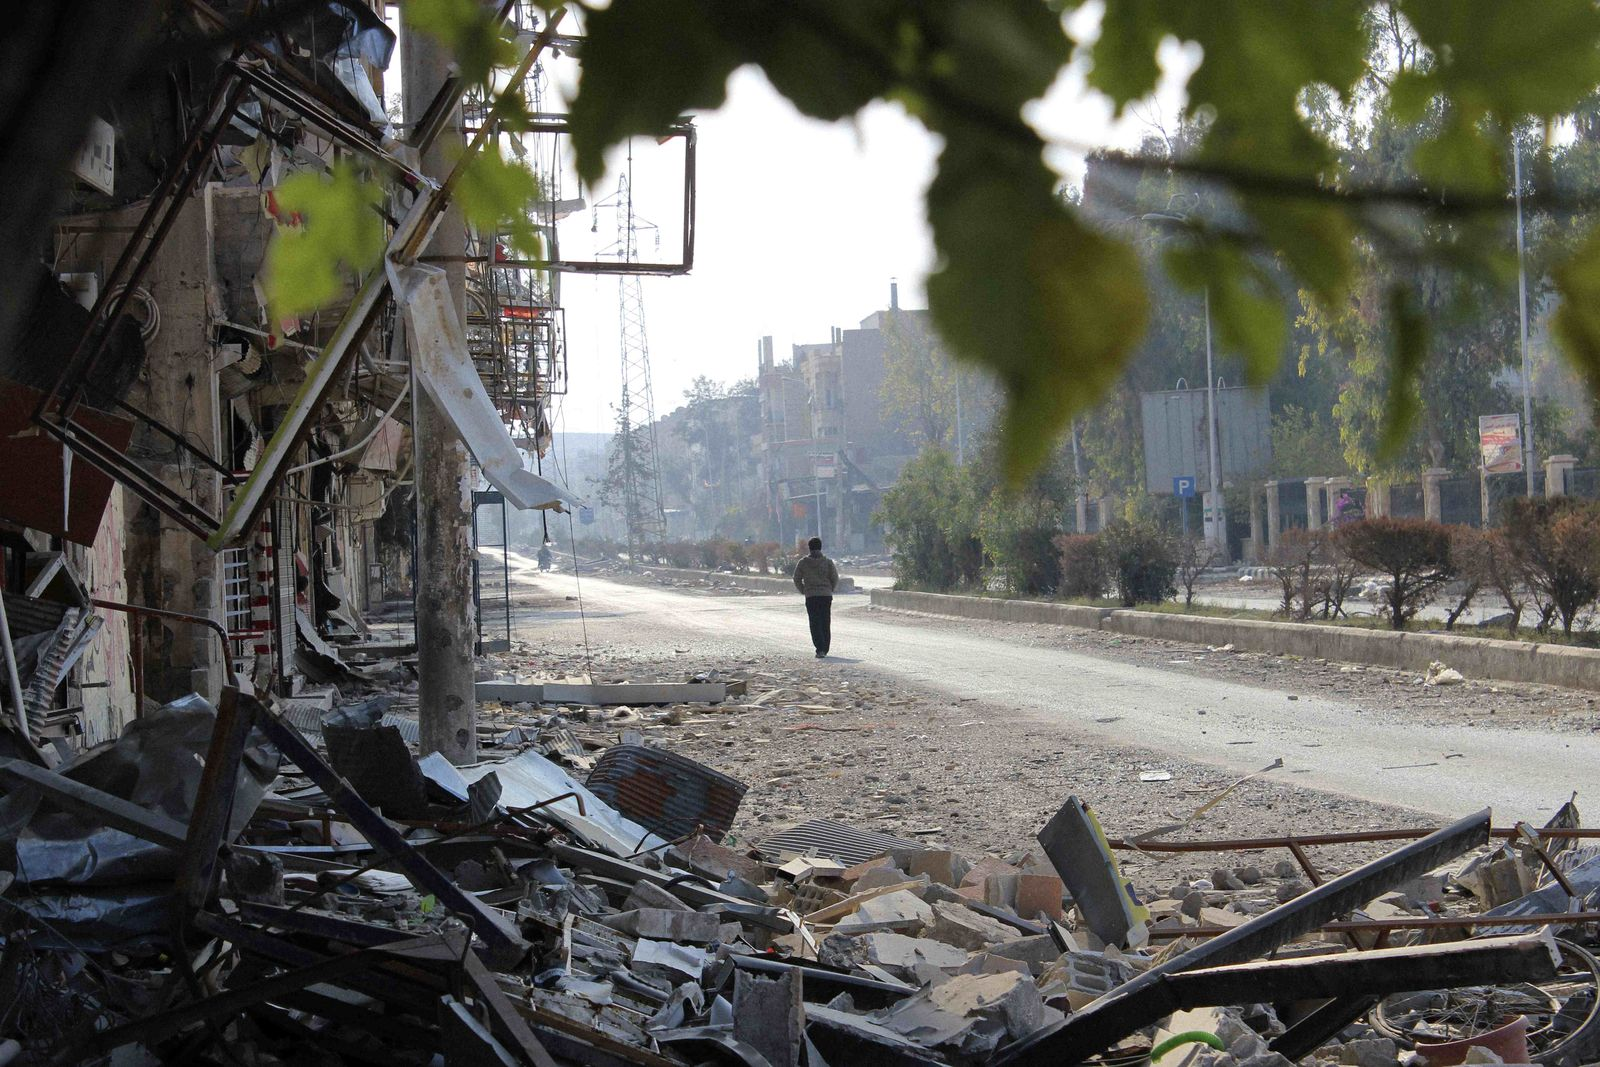 Photo of a destroyed street in the city of Deir Ezzor (photographer: Hayyan al-Yousouf)